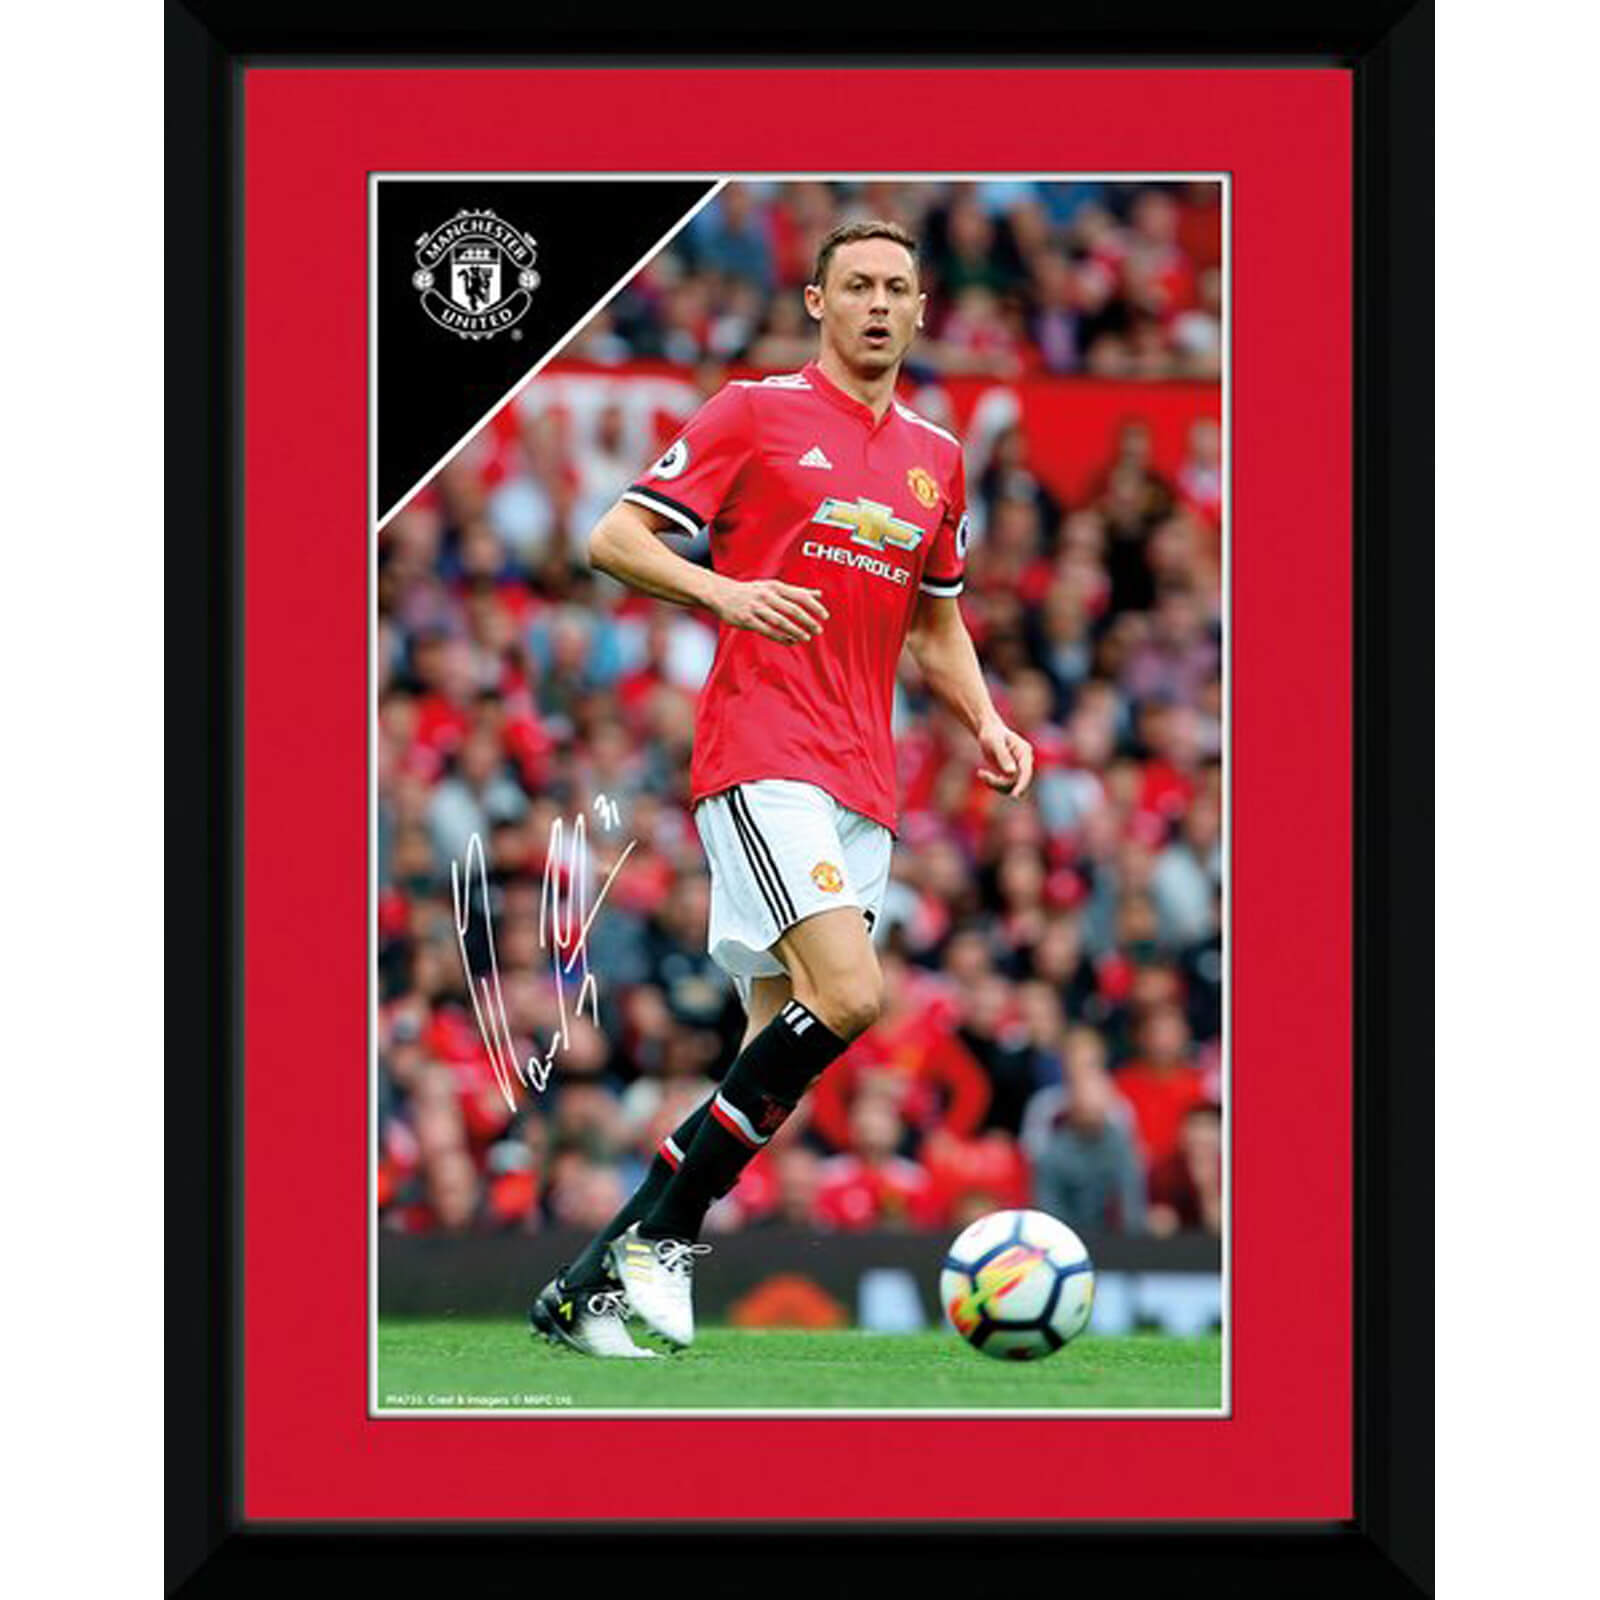 Manchester United Matic 17/18 8 x 6 Inches Framed Photograph